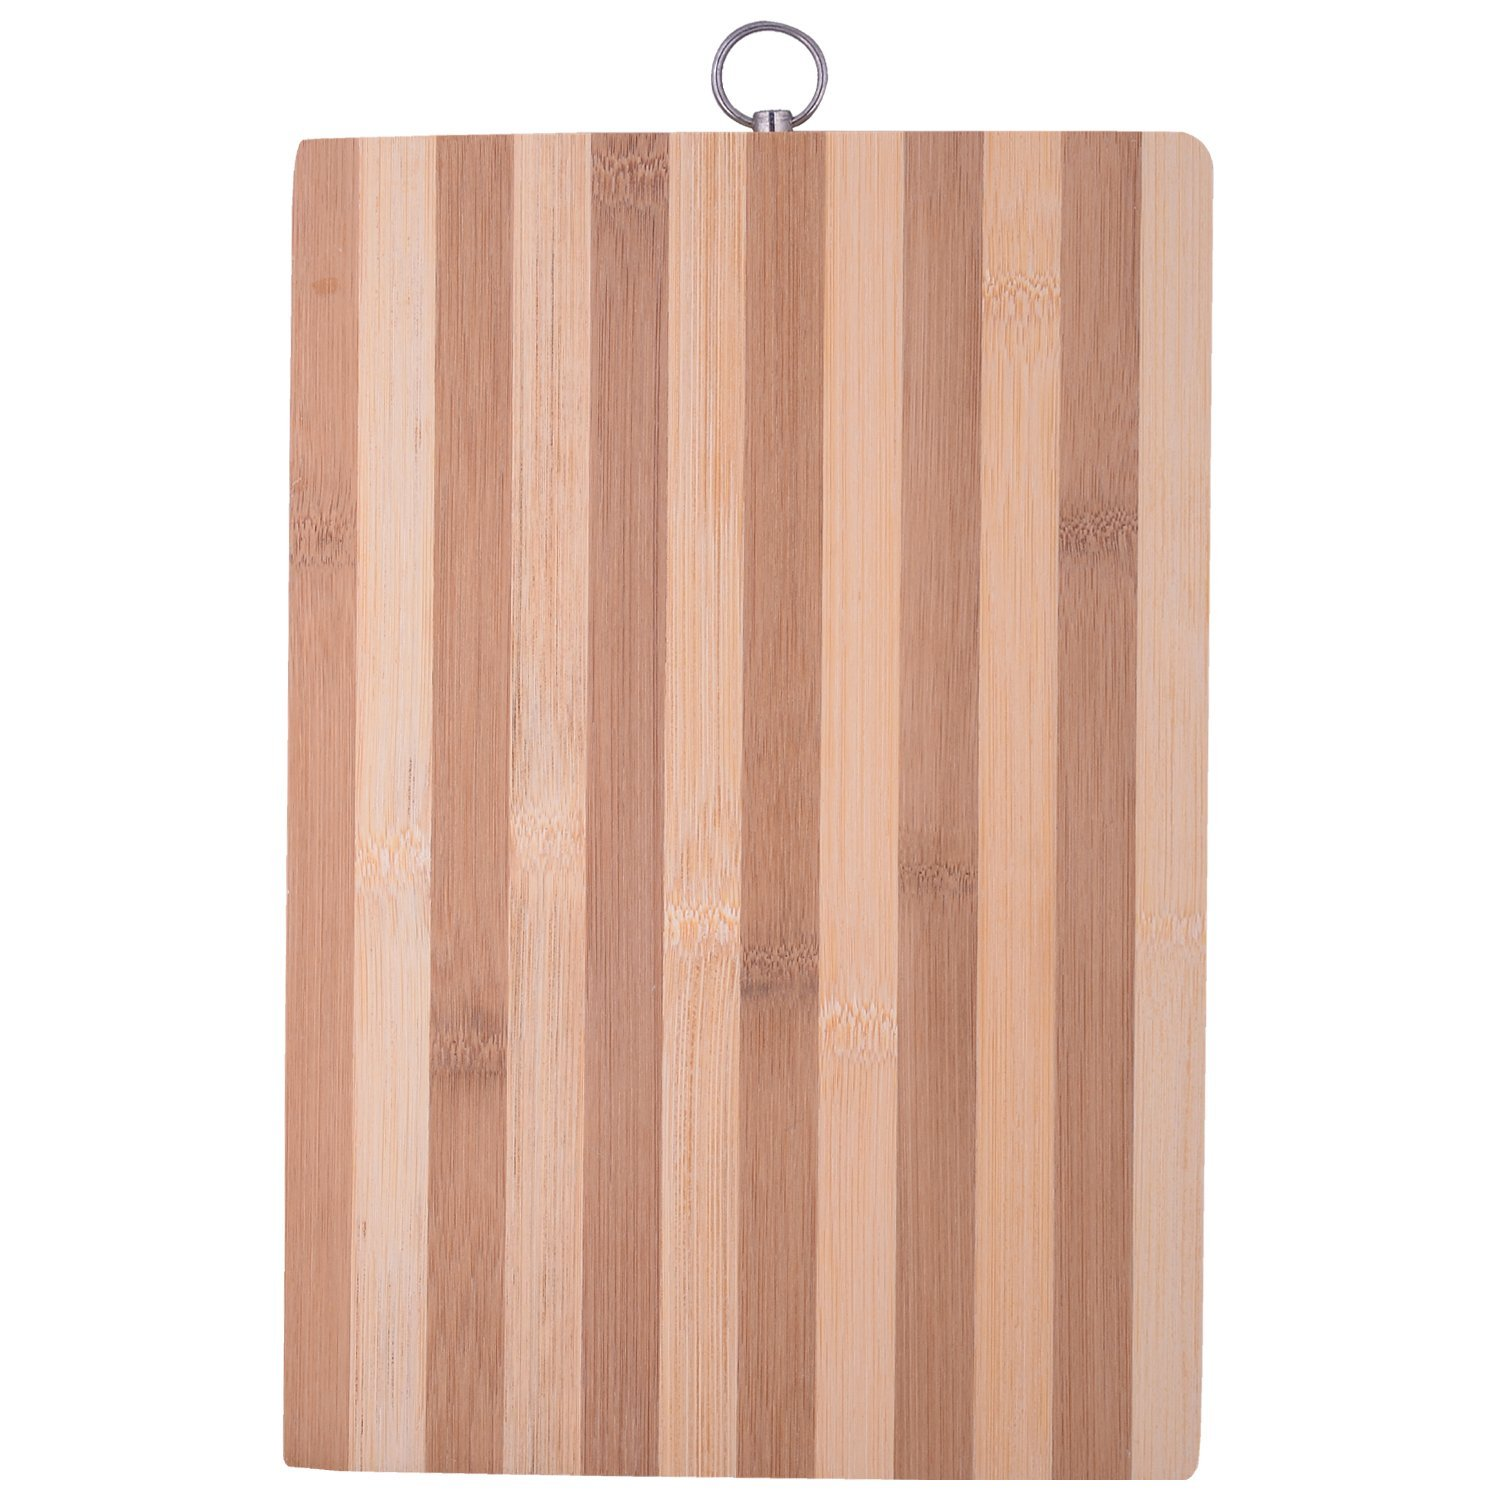 Food Preparation,Excellent Choice ,The Wooden Cheese Board (12 * 10 inces)